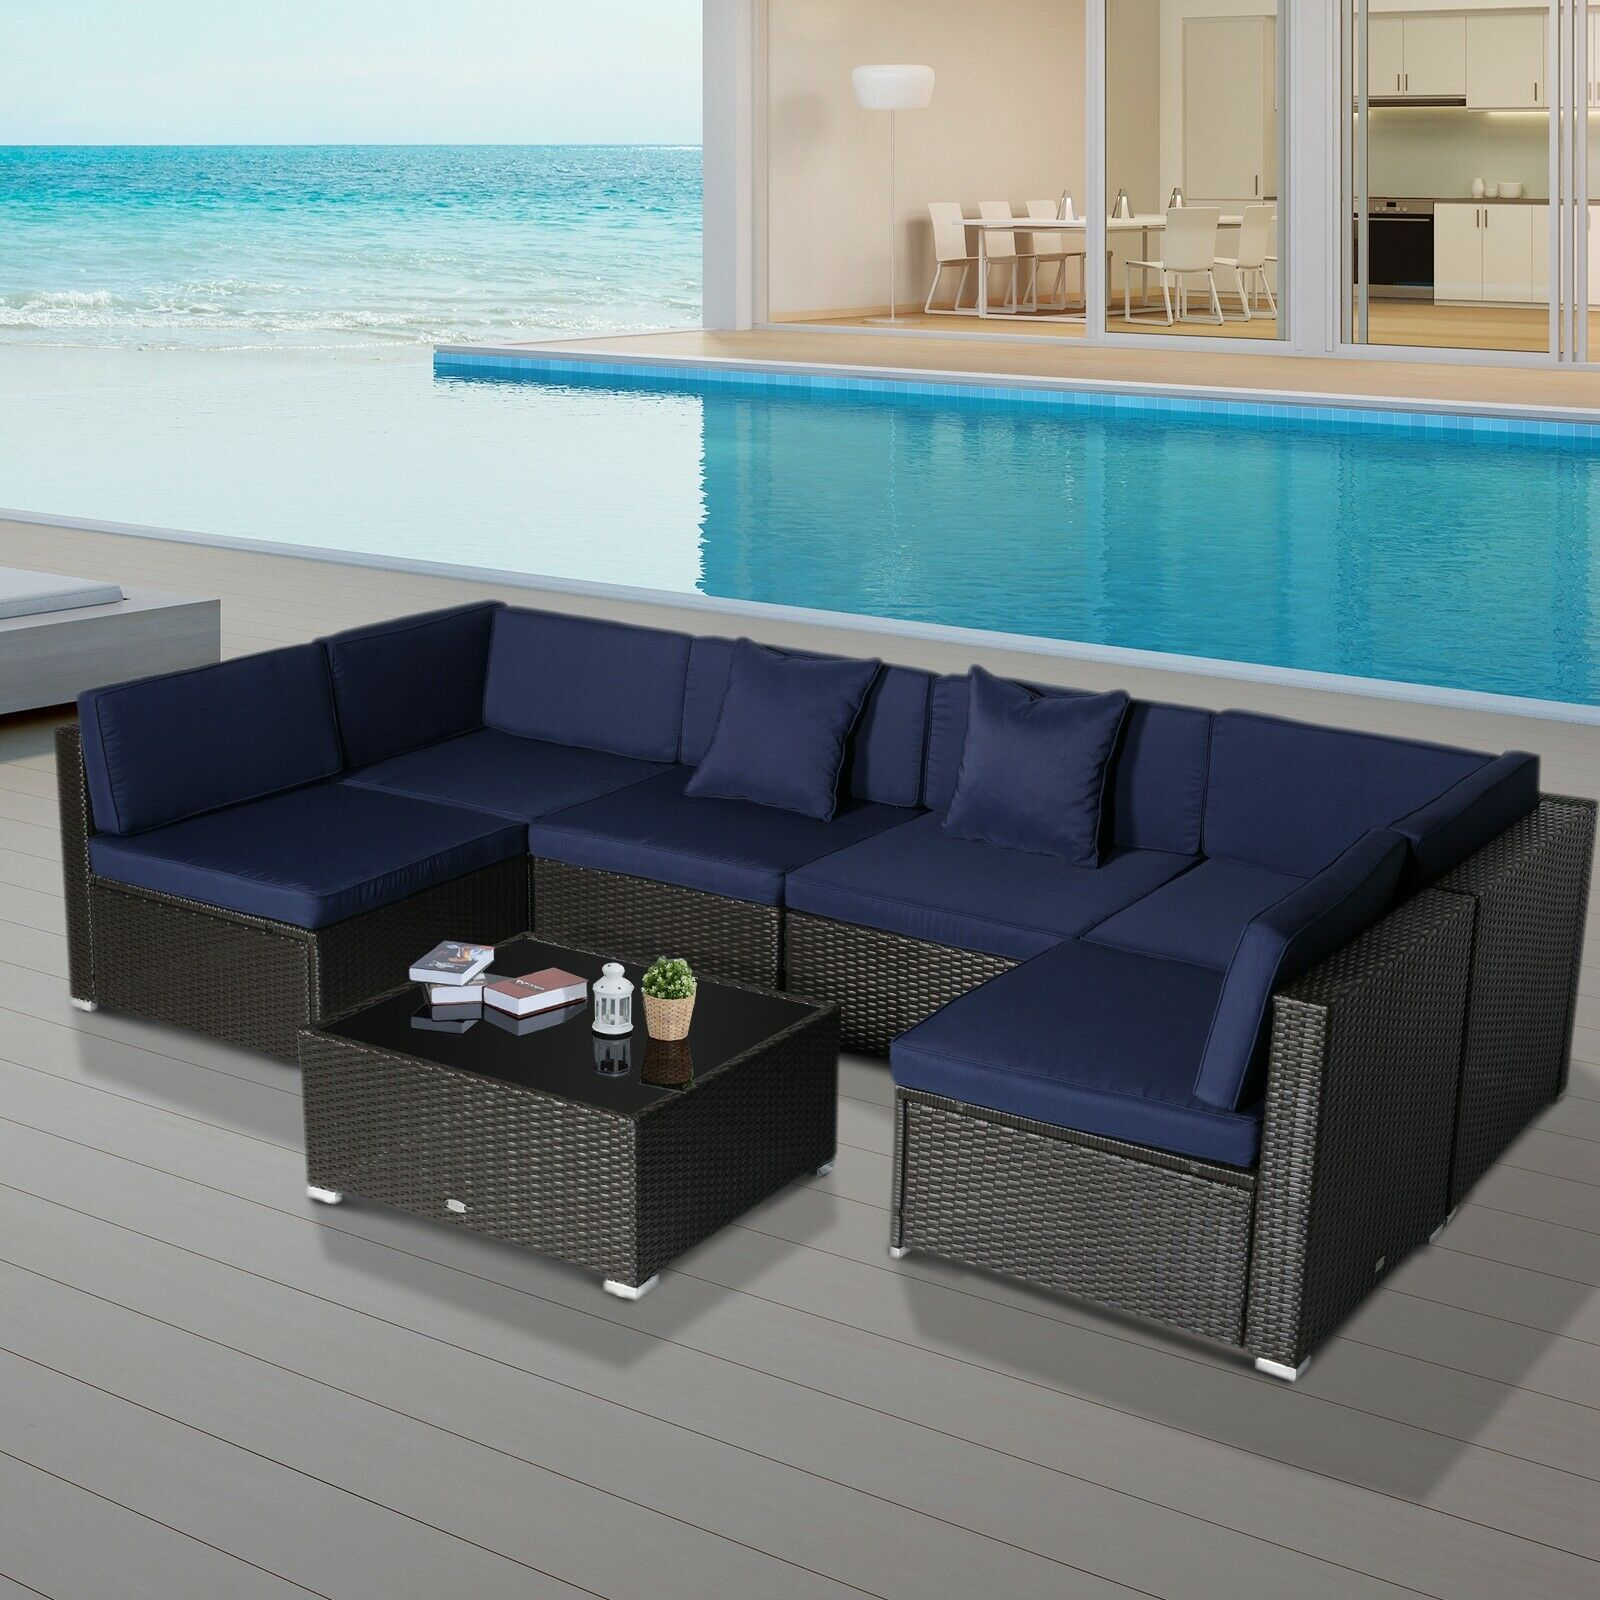 Outsunny Modern Low Back Rattan Chair Sofa Outdoor Sectional Patio